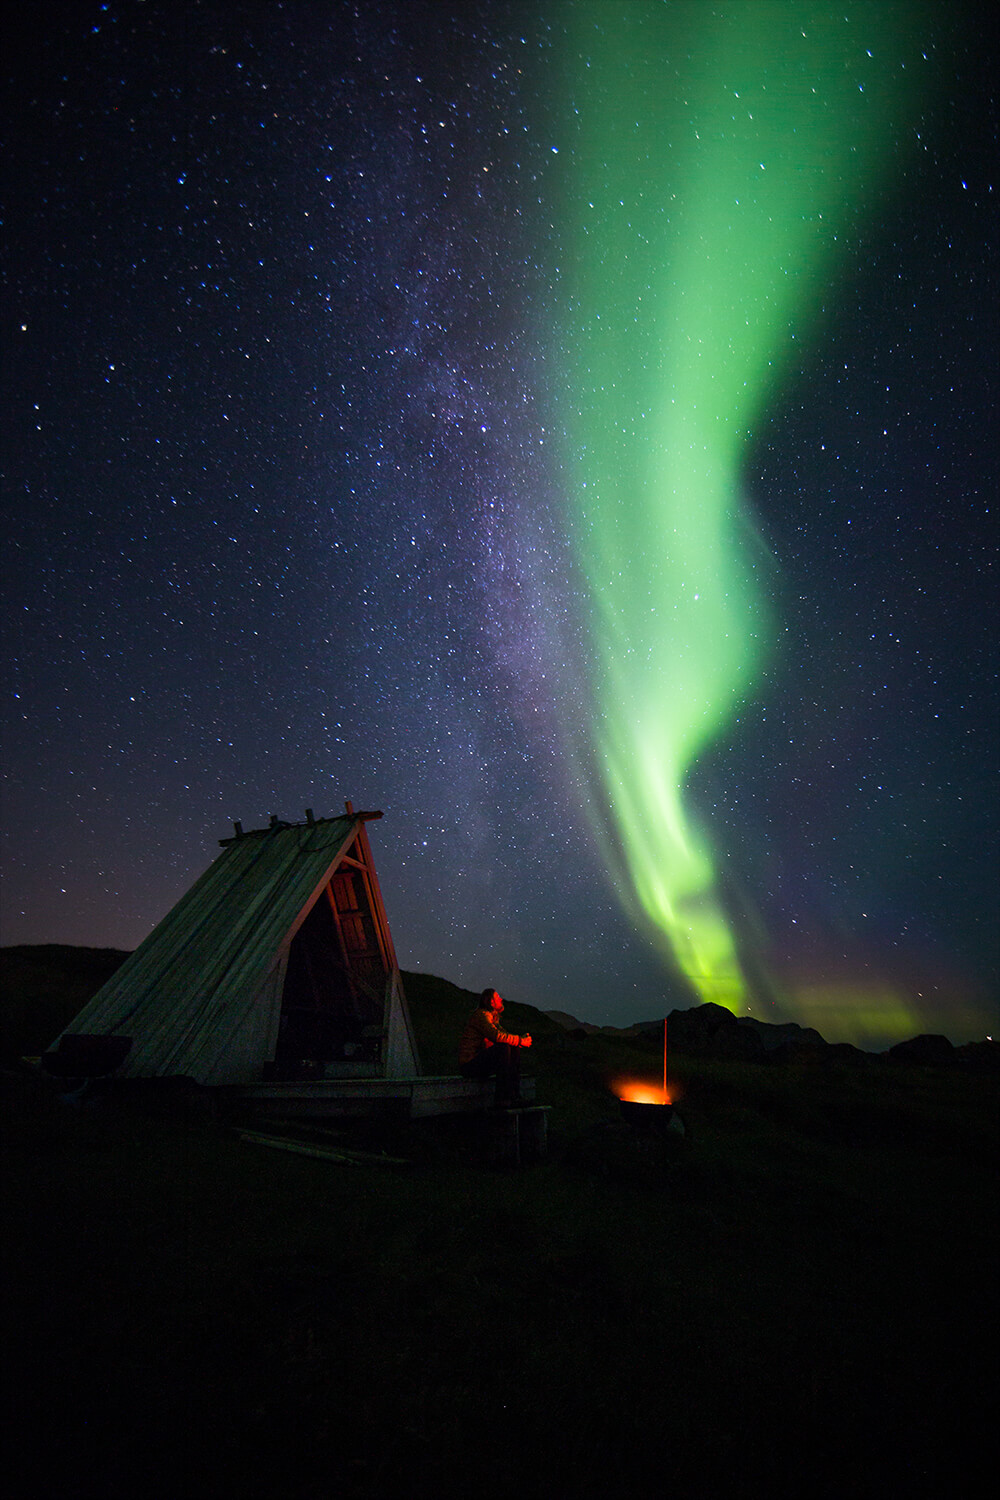 A person in front of a bonfire under the northern lights. Image by Neil Bloem